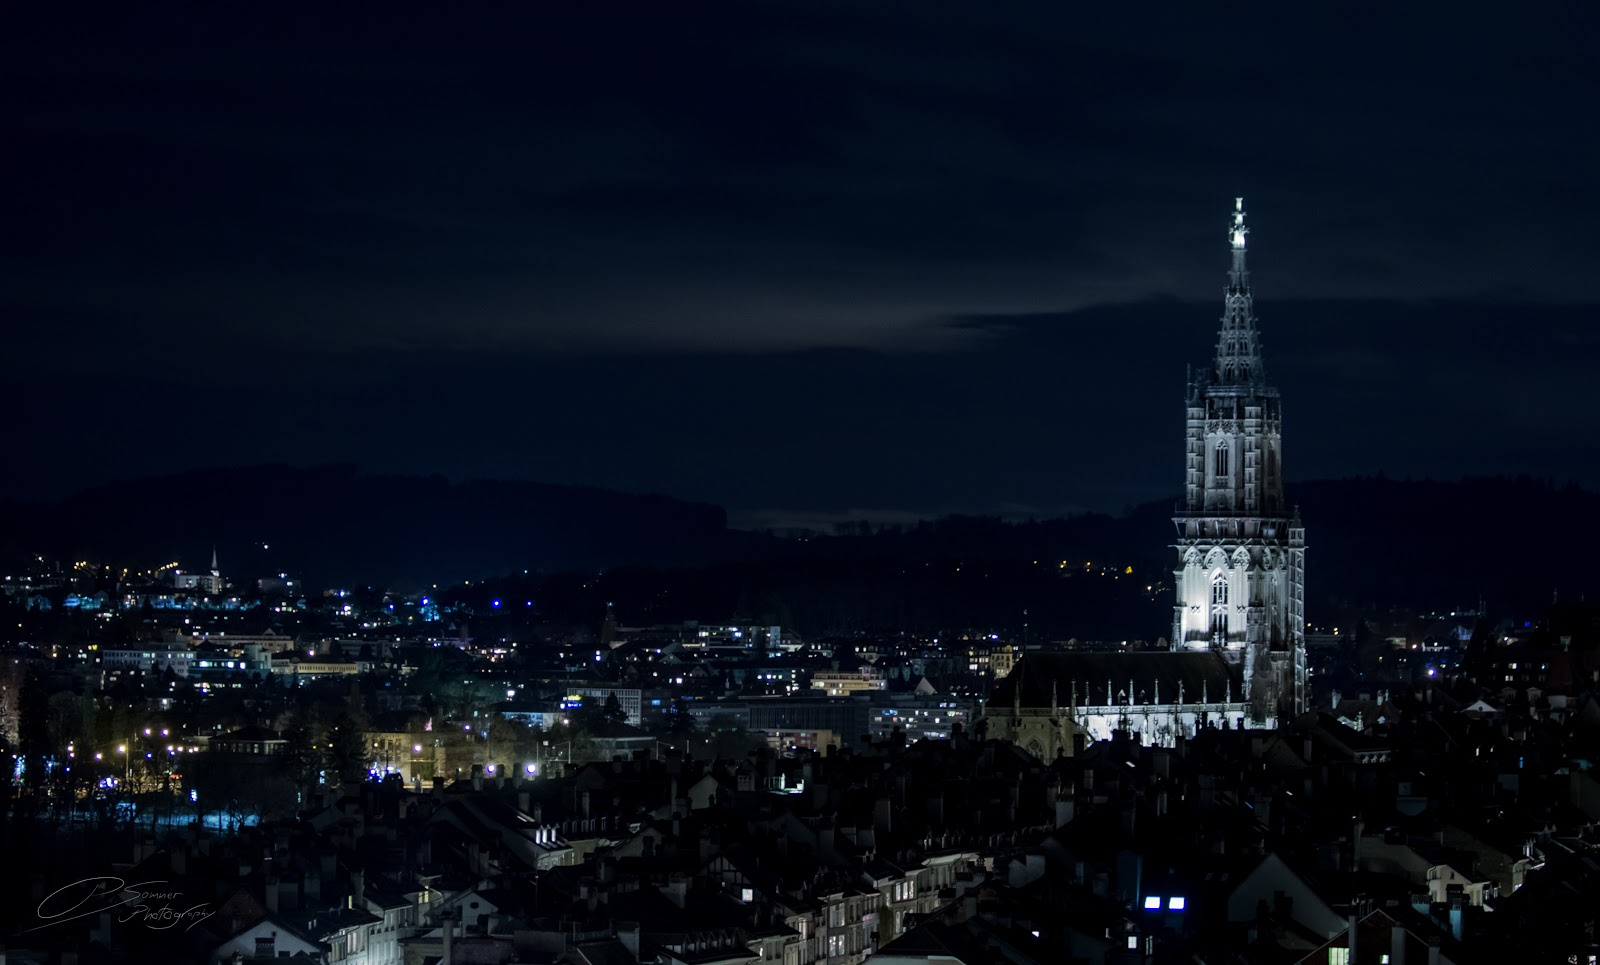 Photo by Pascal Sommer - The Berner Münster, along with the usual construction work